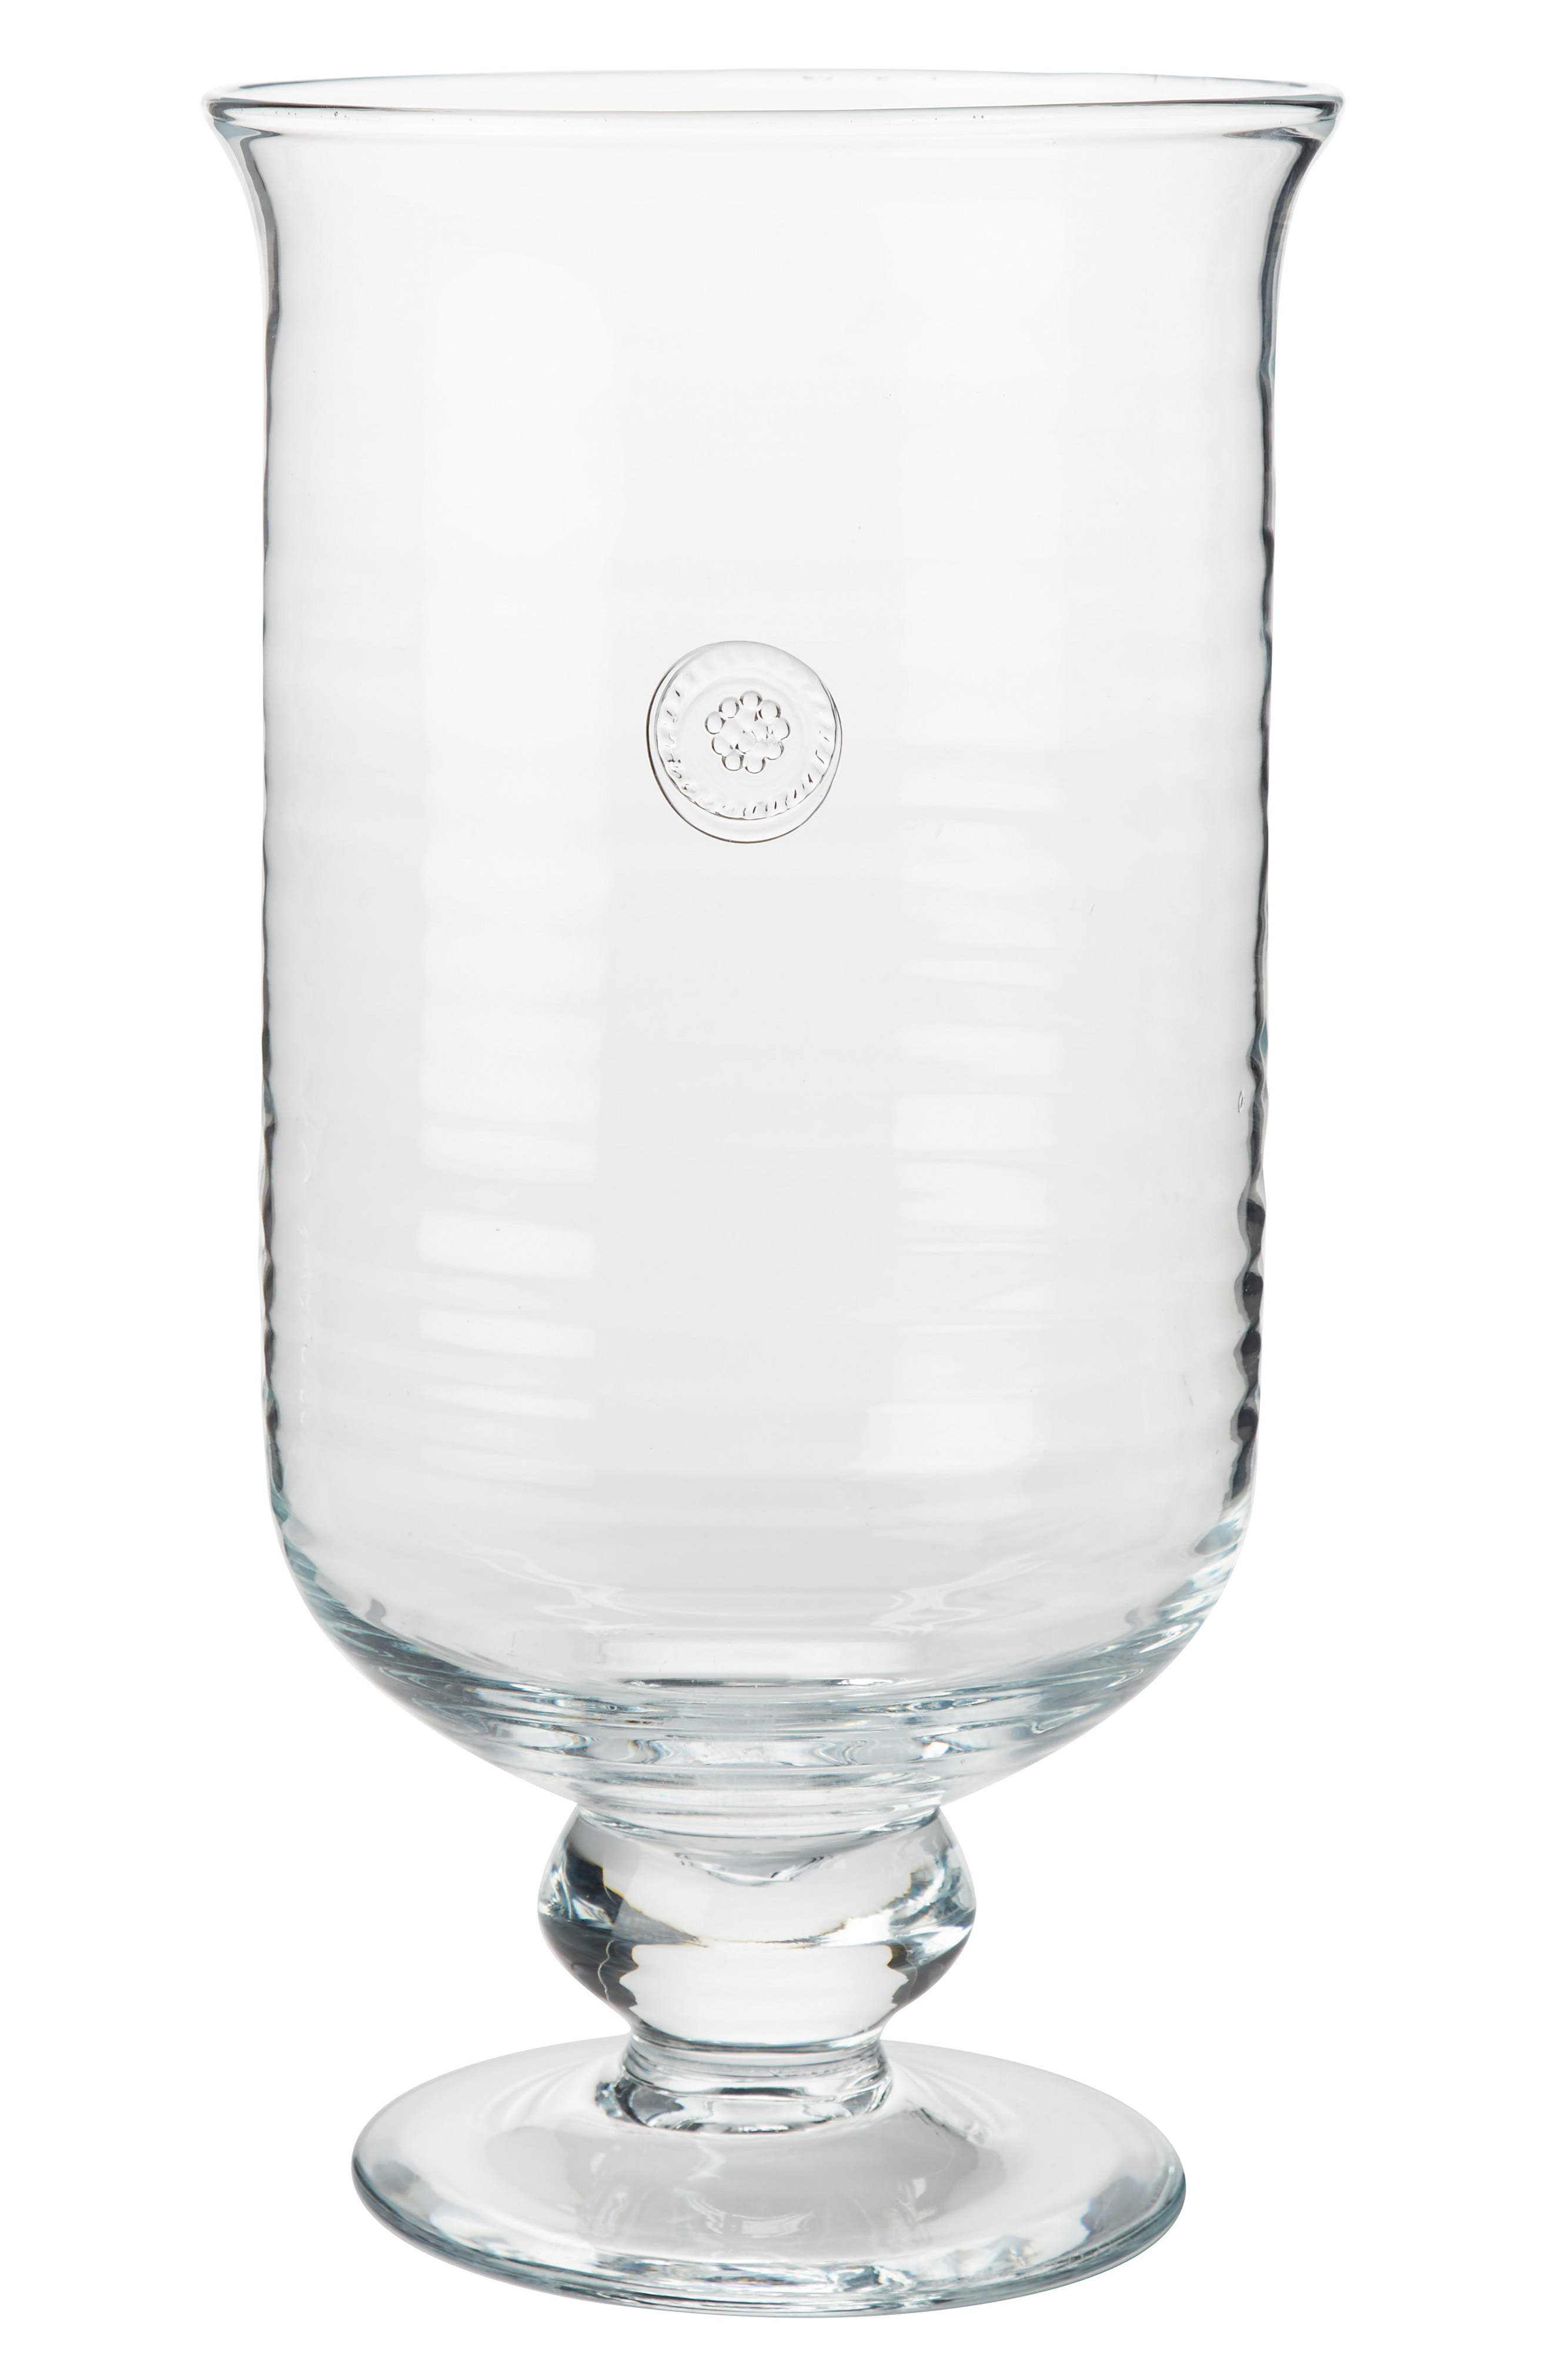 Berry & Thread Large Hurricane Glass Candleholder,                             Alternate thumbnail 2, color,                             CLEAR